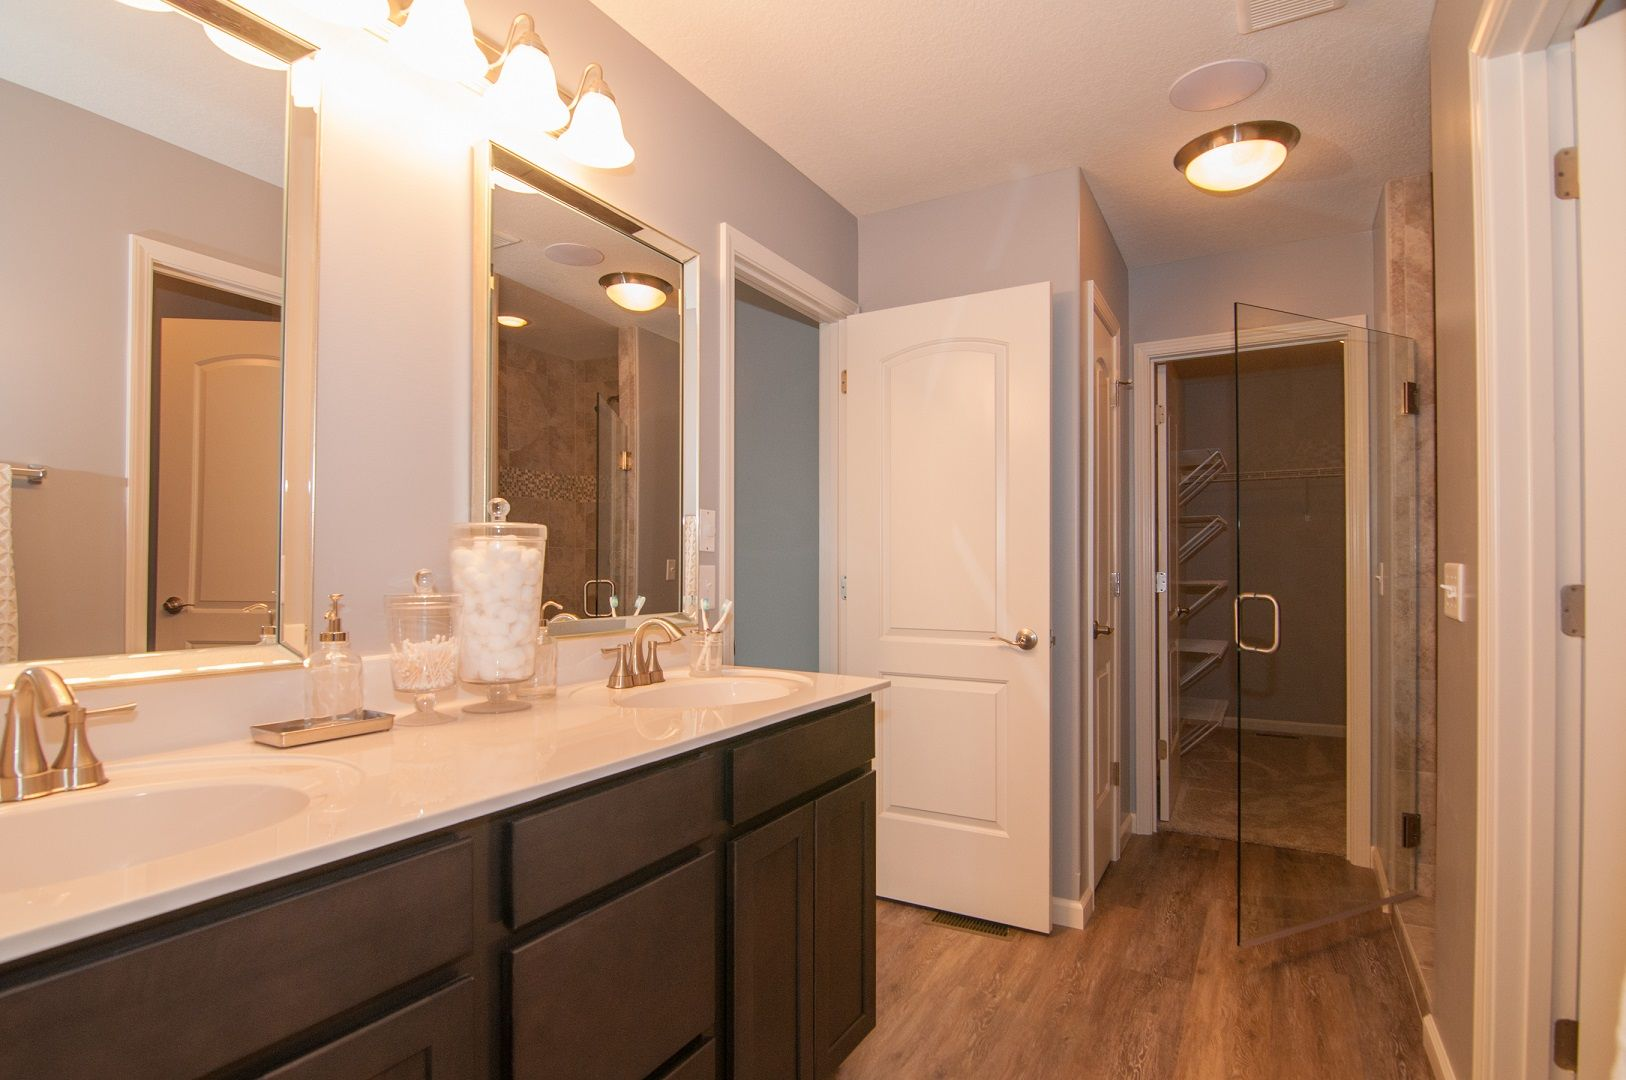 Bathroom featured in the Bristol By D.R. Horton in Fort Wayne, IN